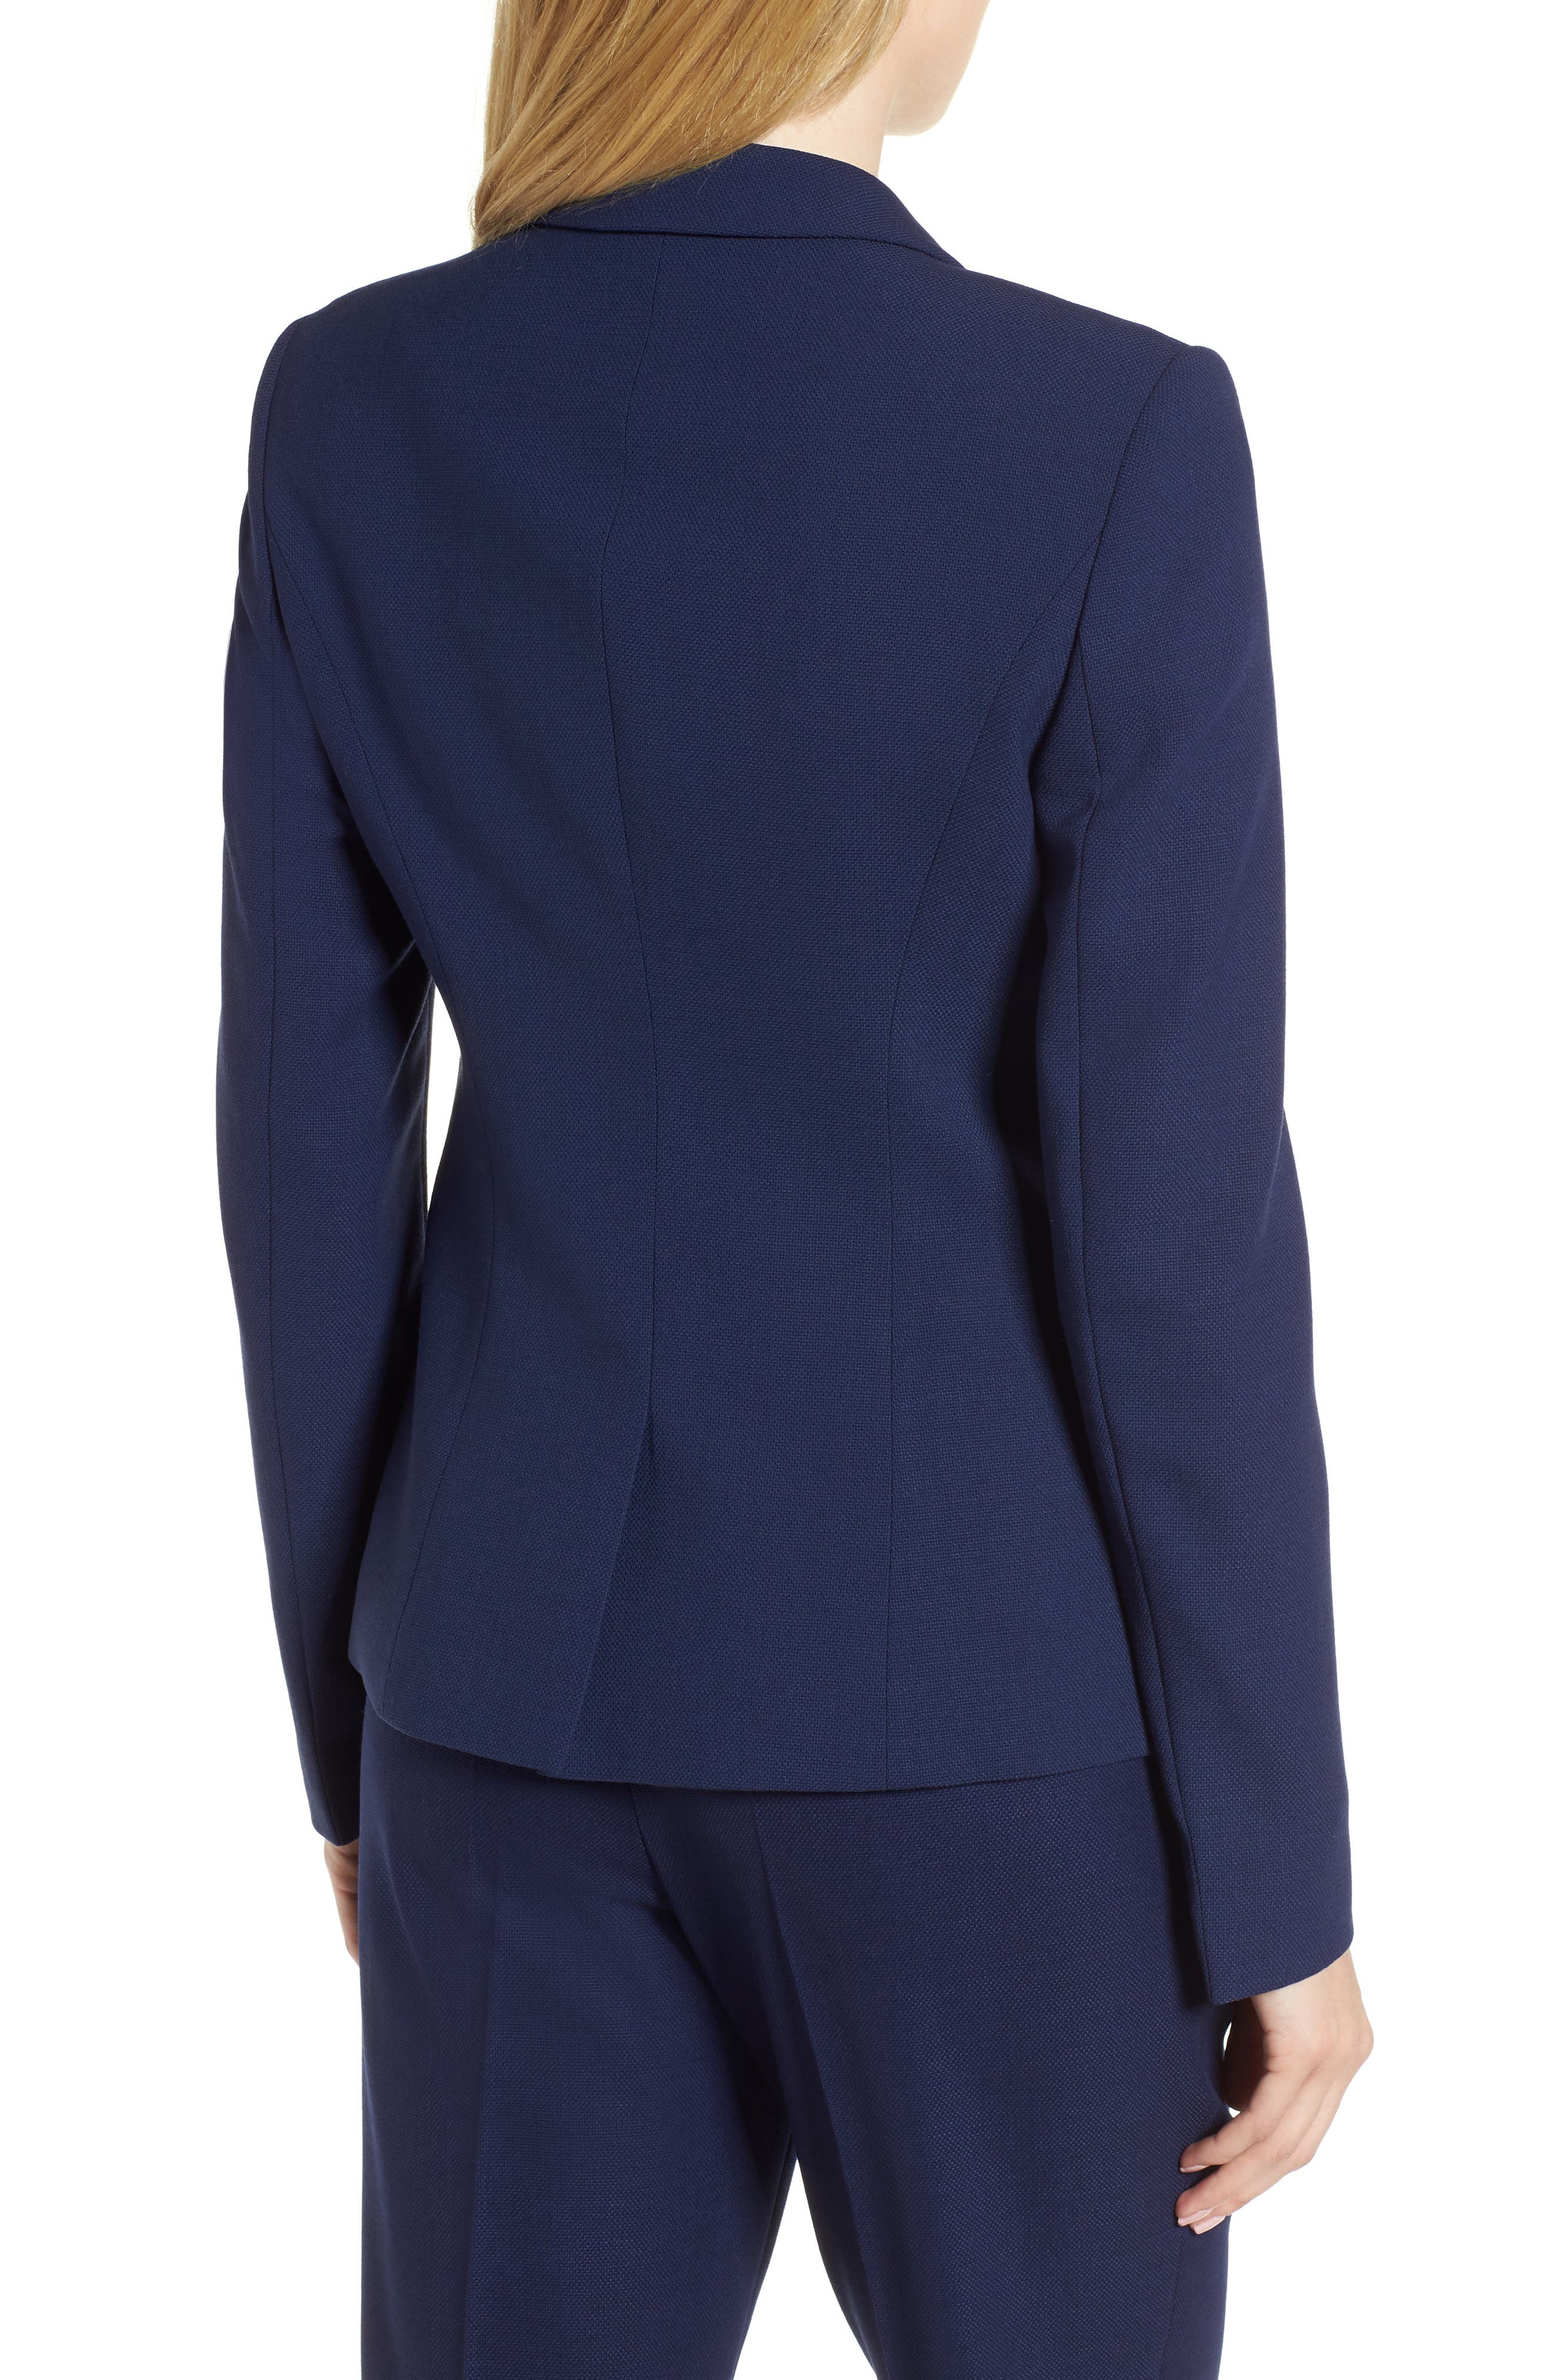 Jibalena Textured Stretch Wool Suit Jacket,                             Alternate thumbnail 2, color,                             Nautical